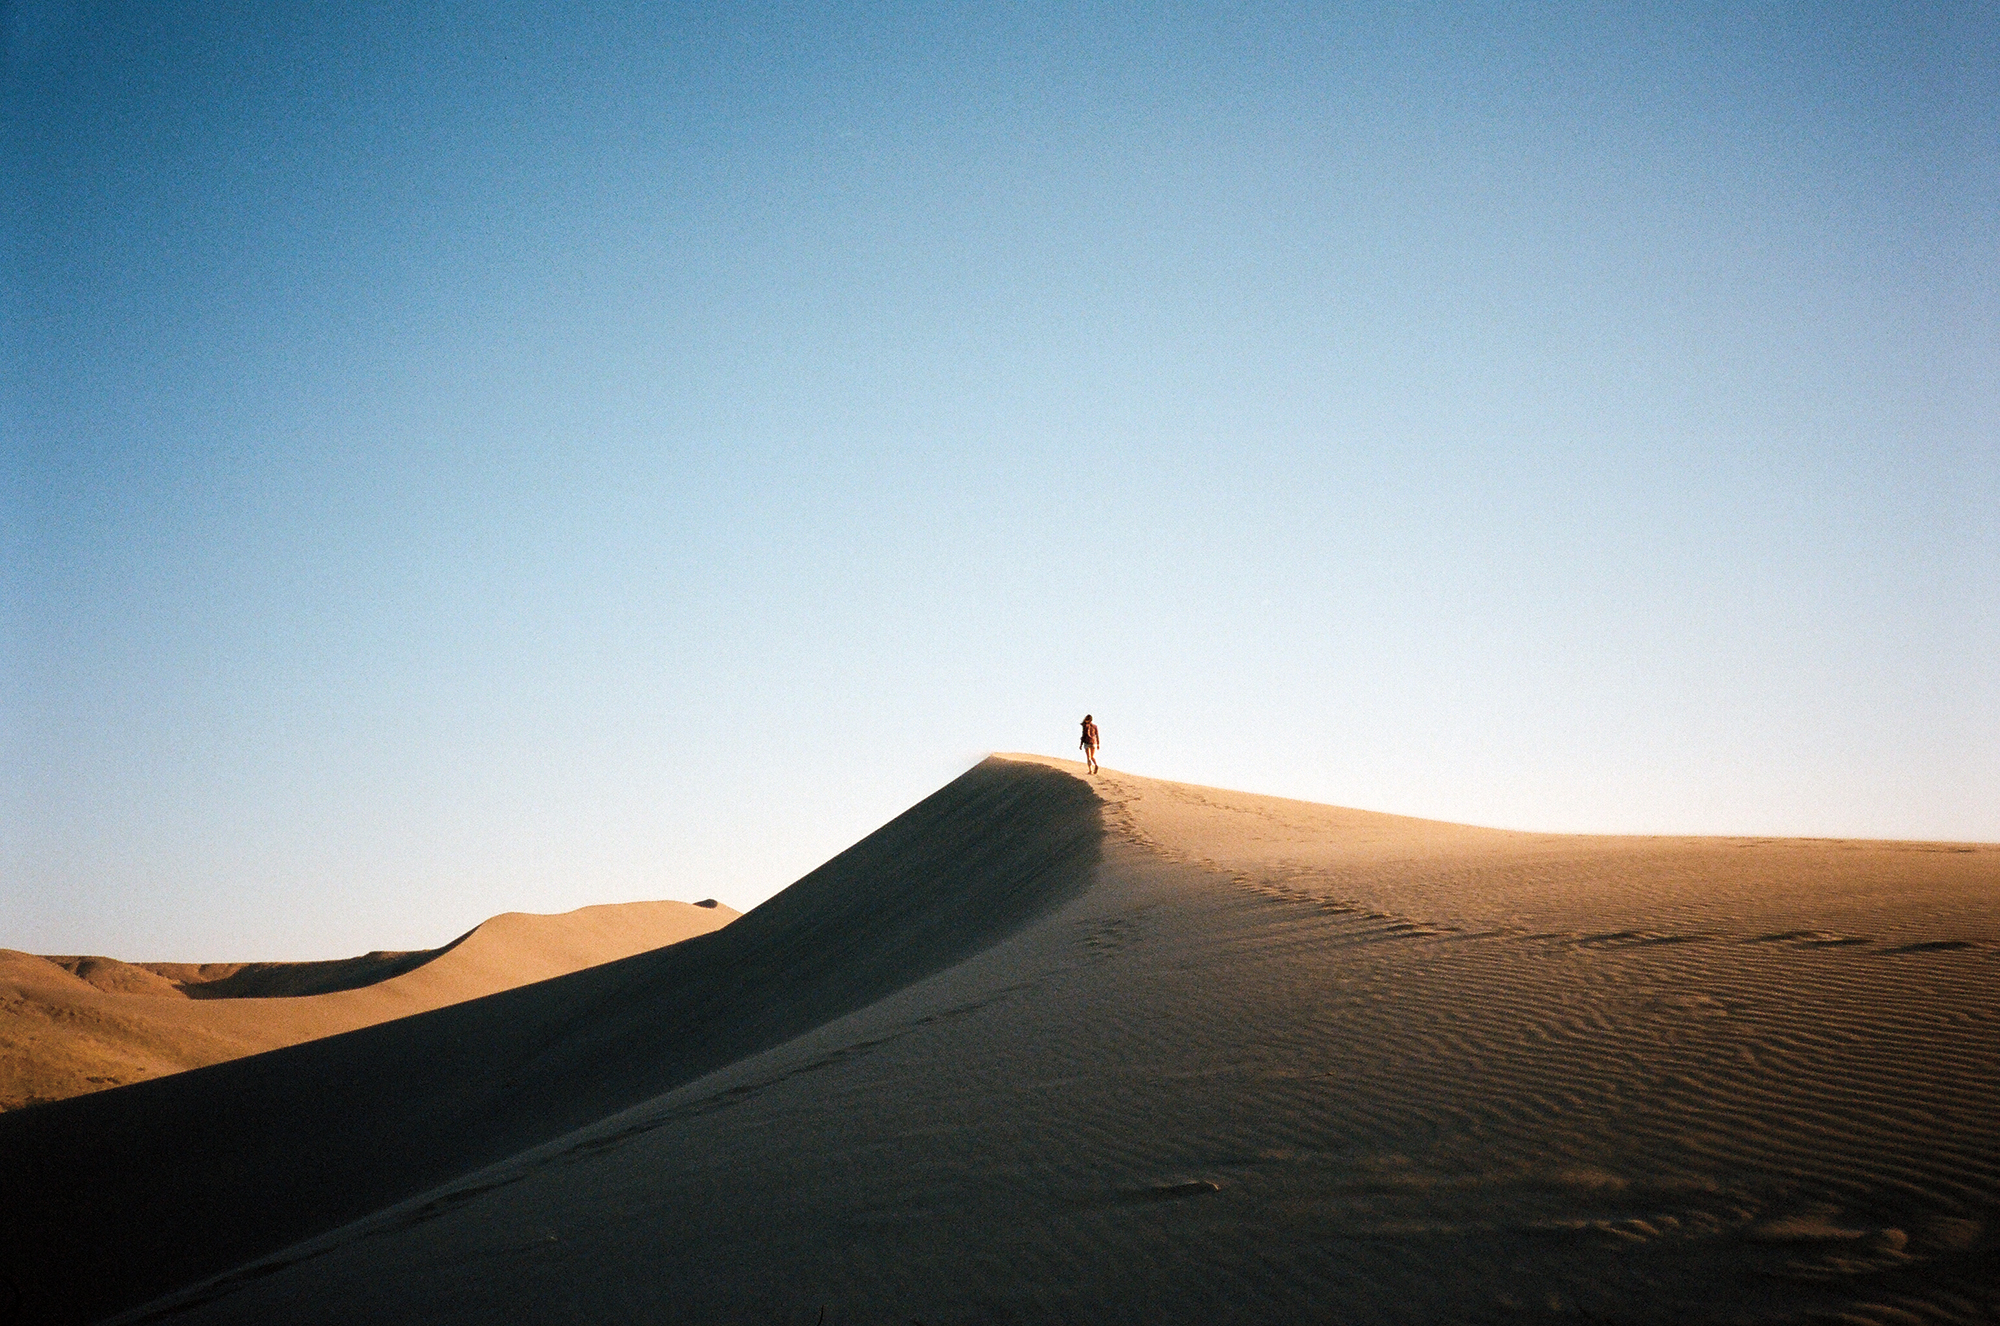 Desert sand dunes with person walking through them